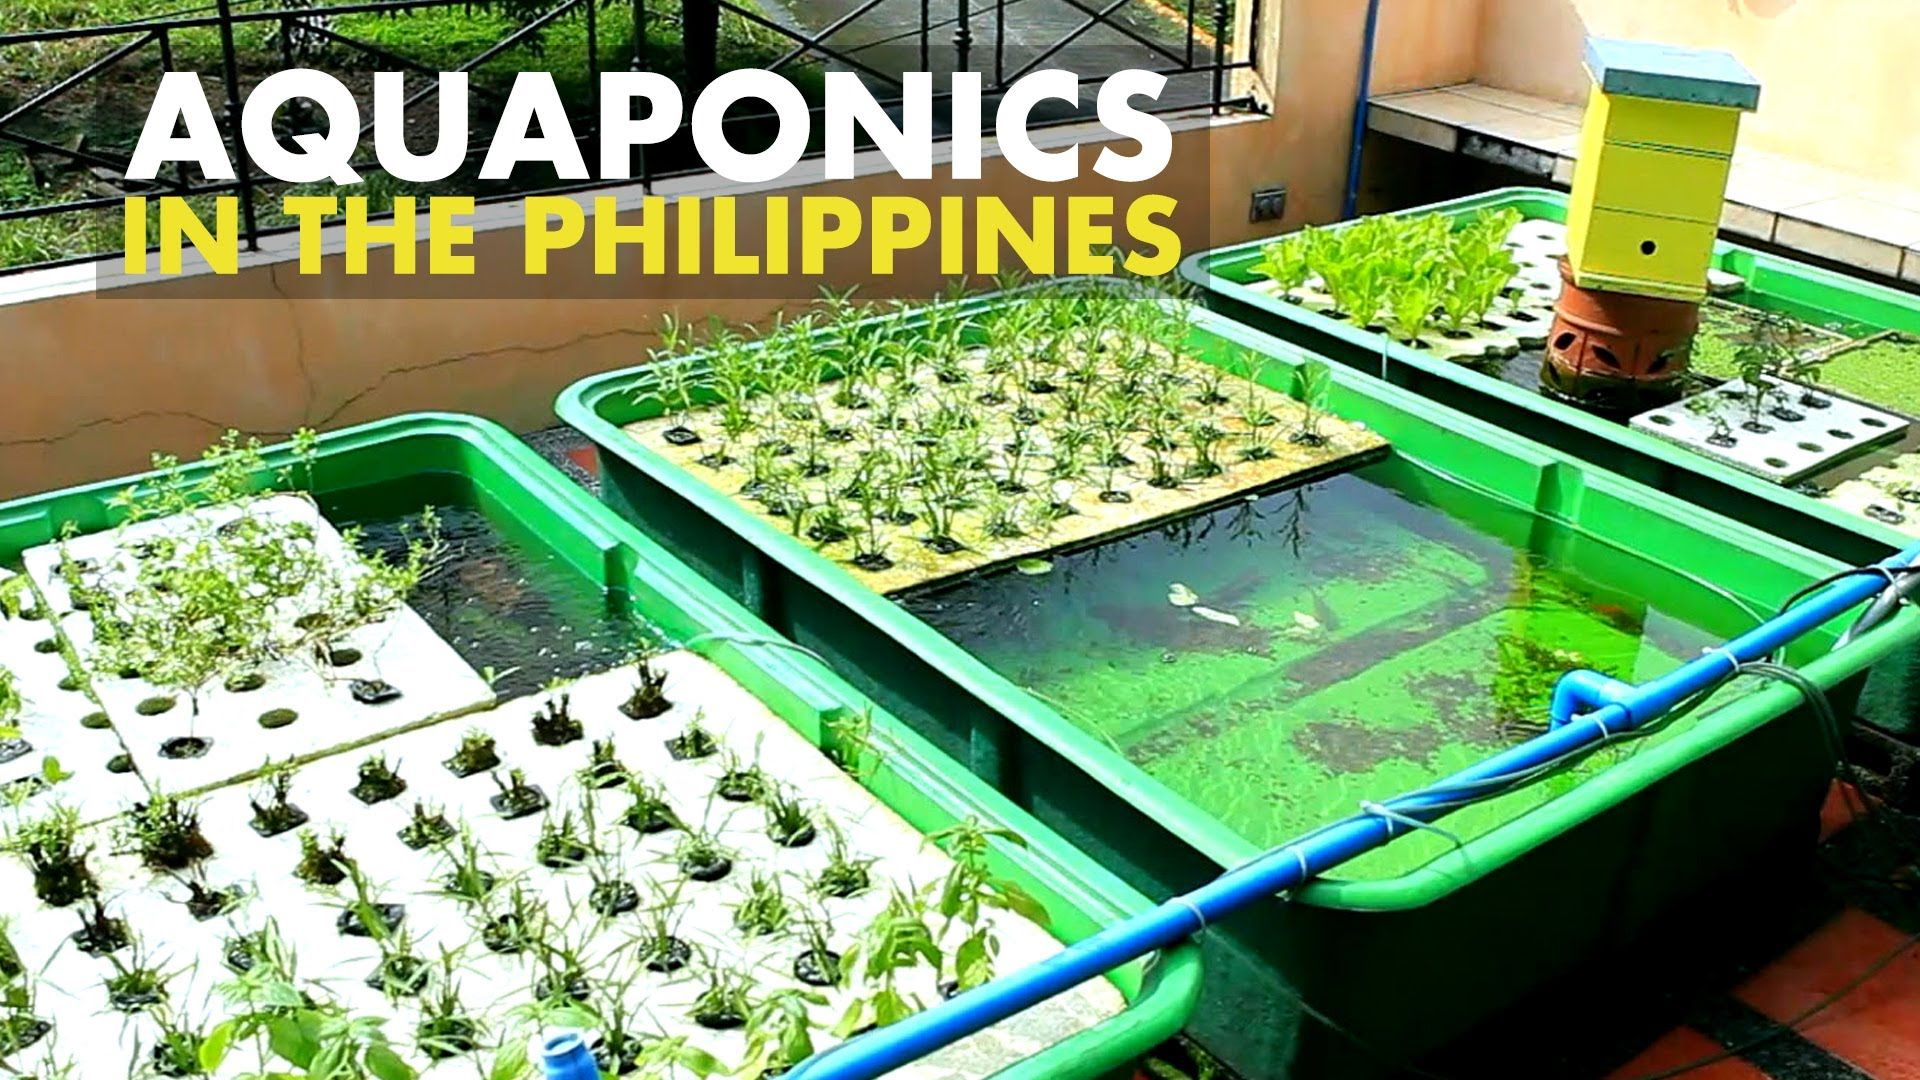 agribusiness in the philippines piggery aquaponics a system of